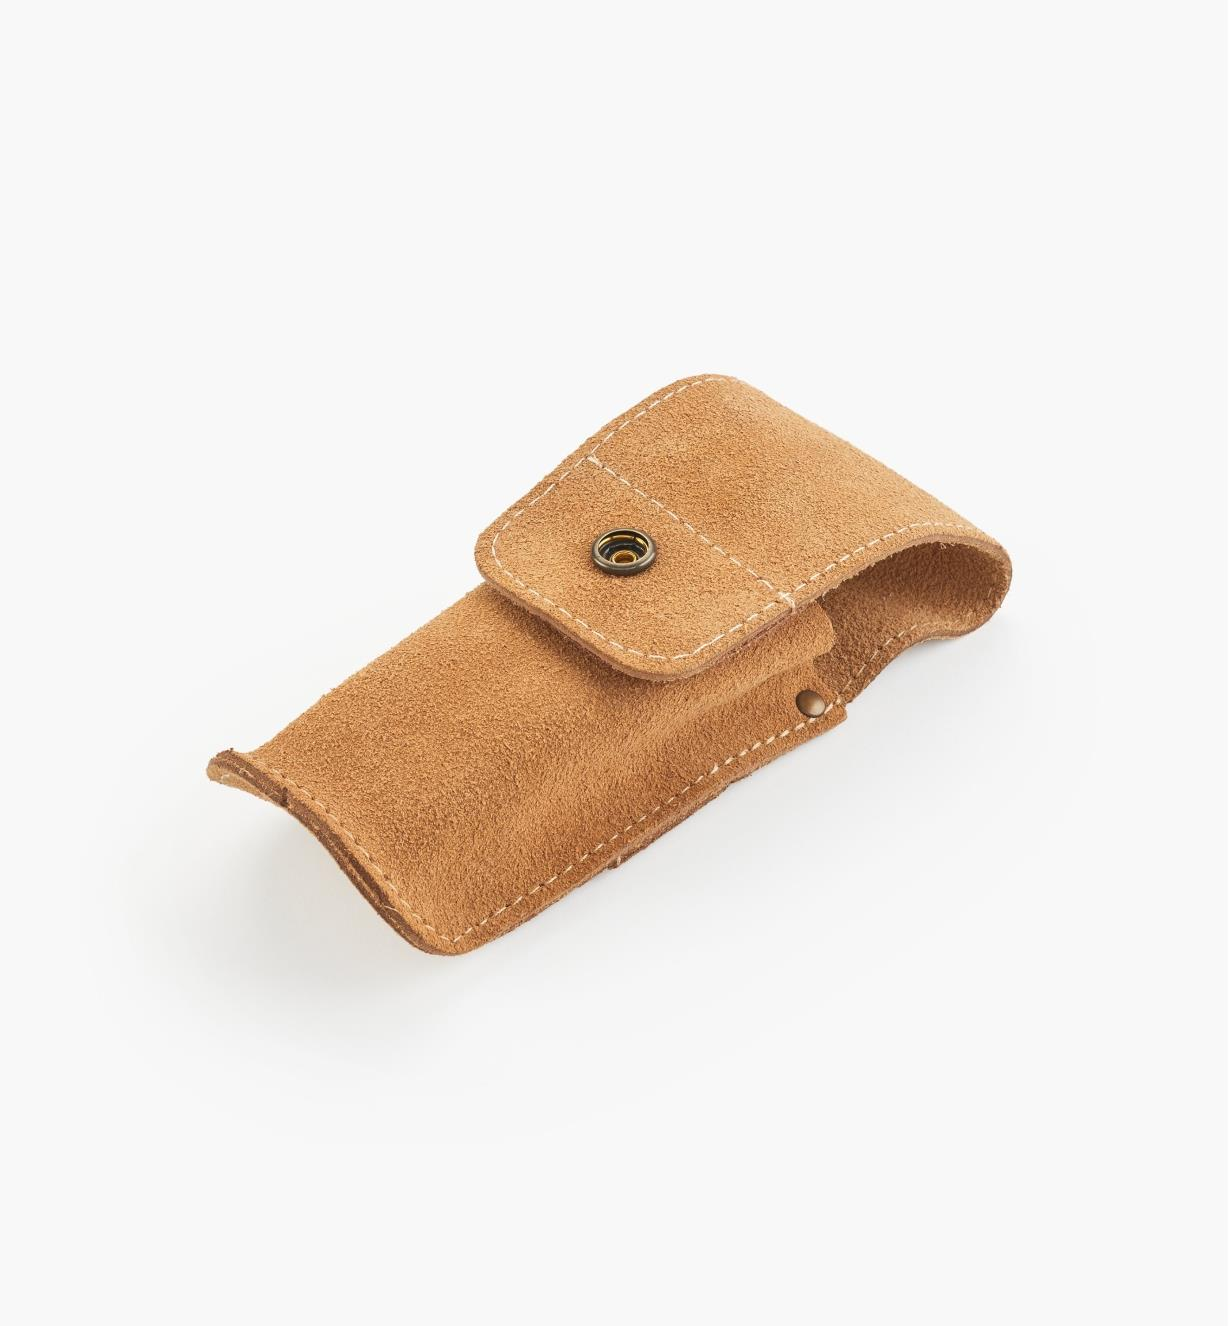 67K7316 - Leather Apron Plane Holster